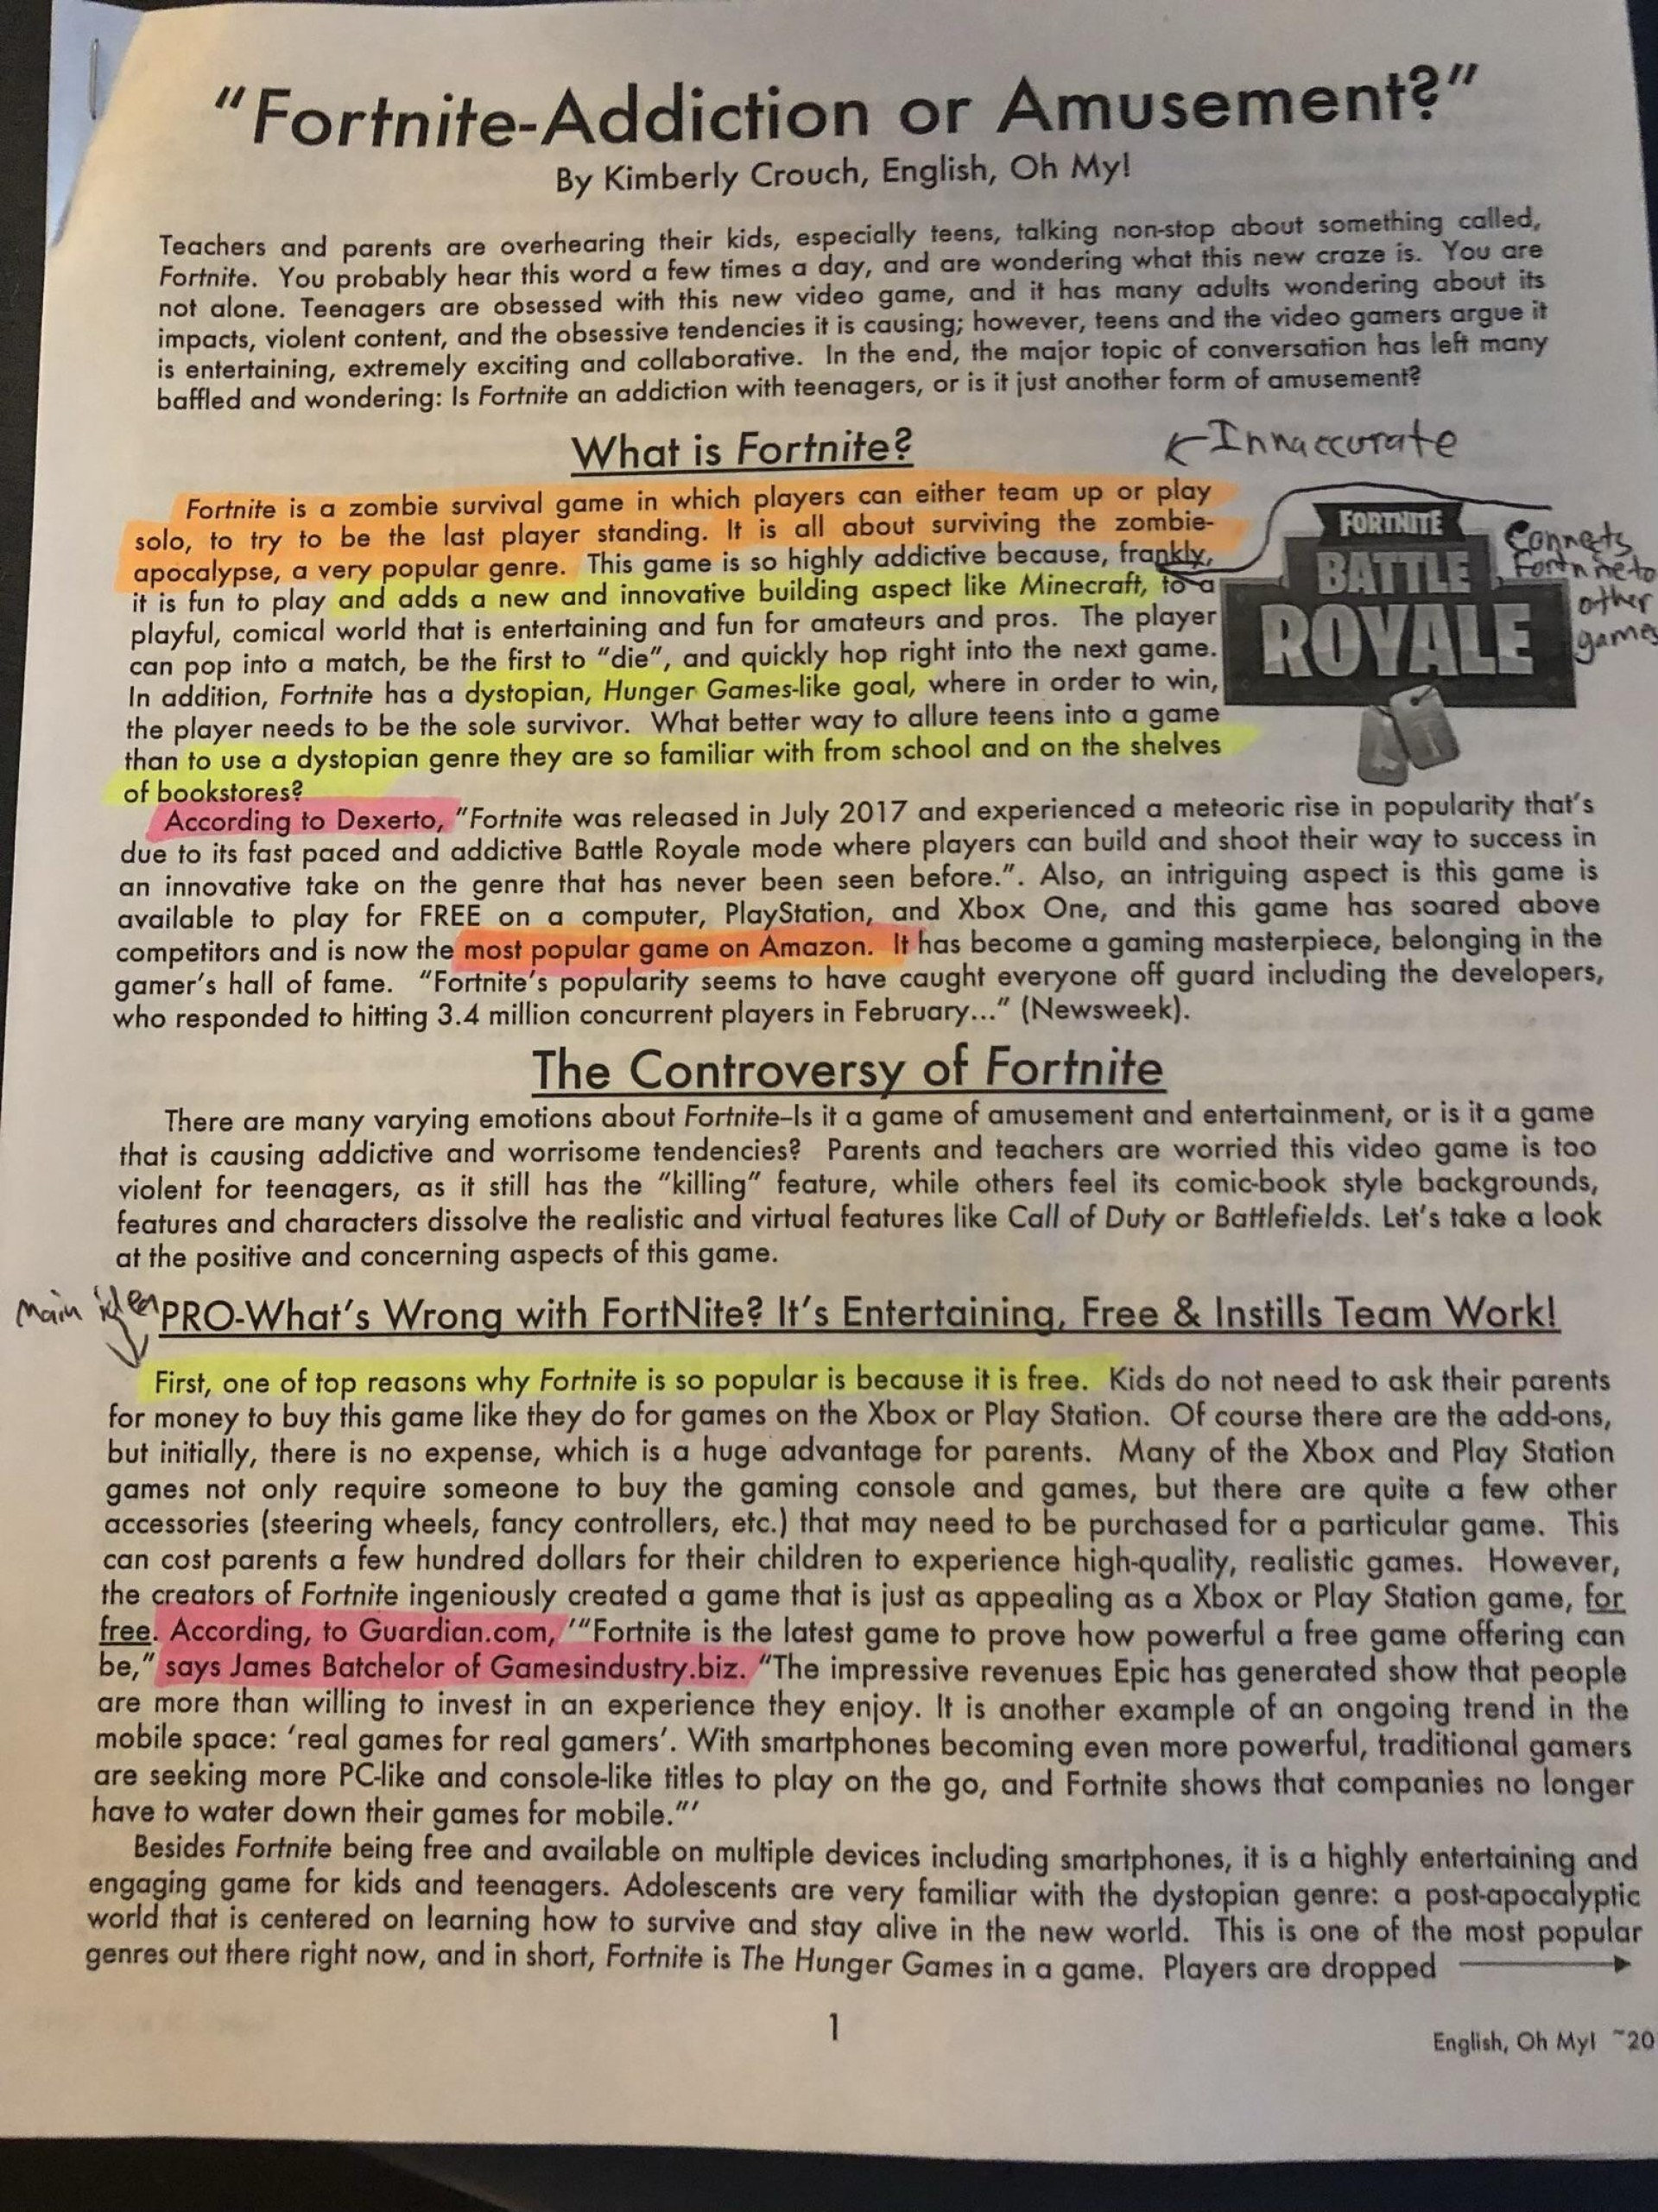 015 G47dmb8a0jk11 How To Annotate An Essay Wondrous A Movie In Critical 1920